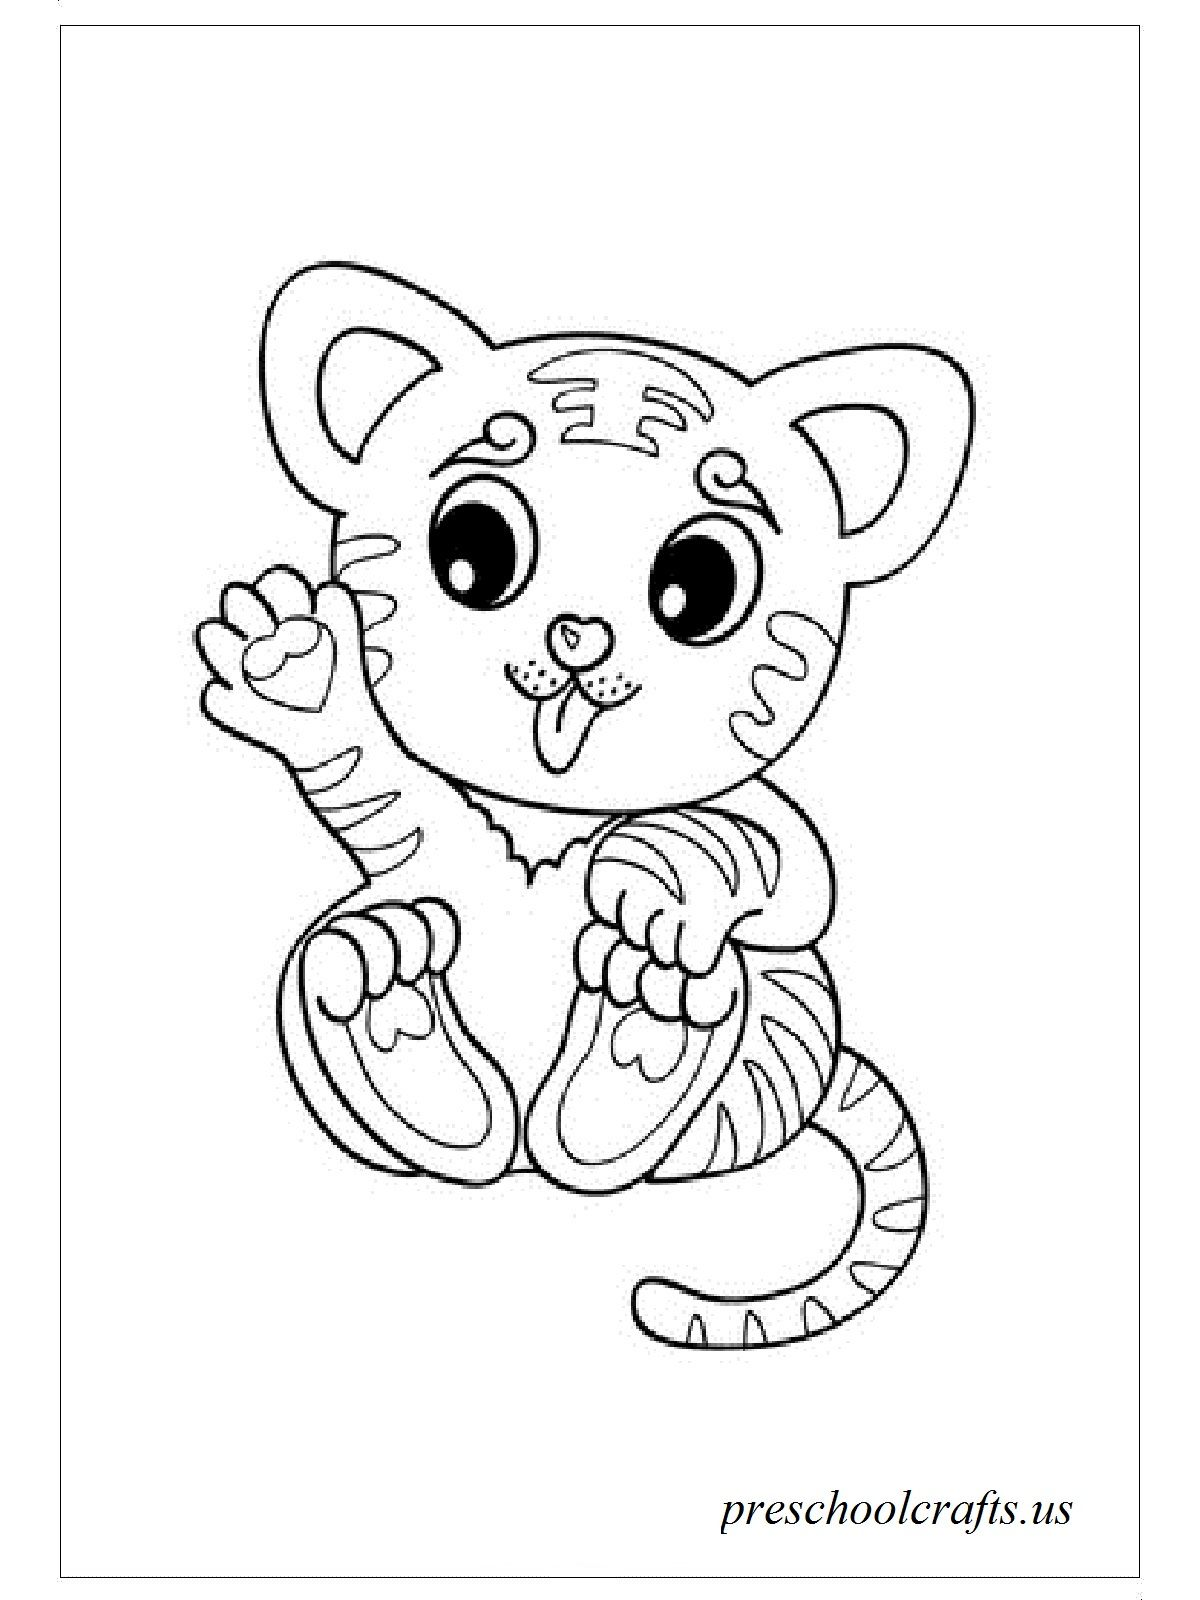 baby tiger coloring pages - Preschool Crafts   Ideas for camp ...